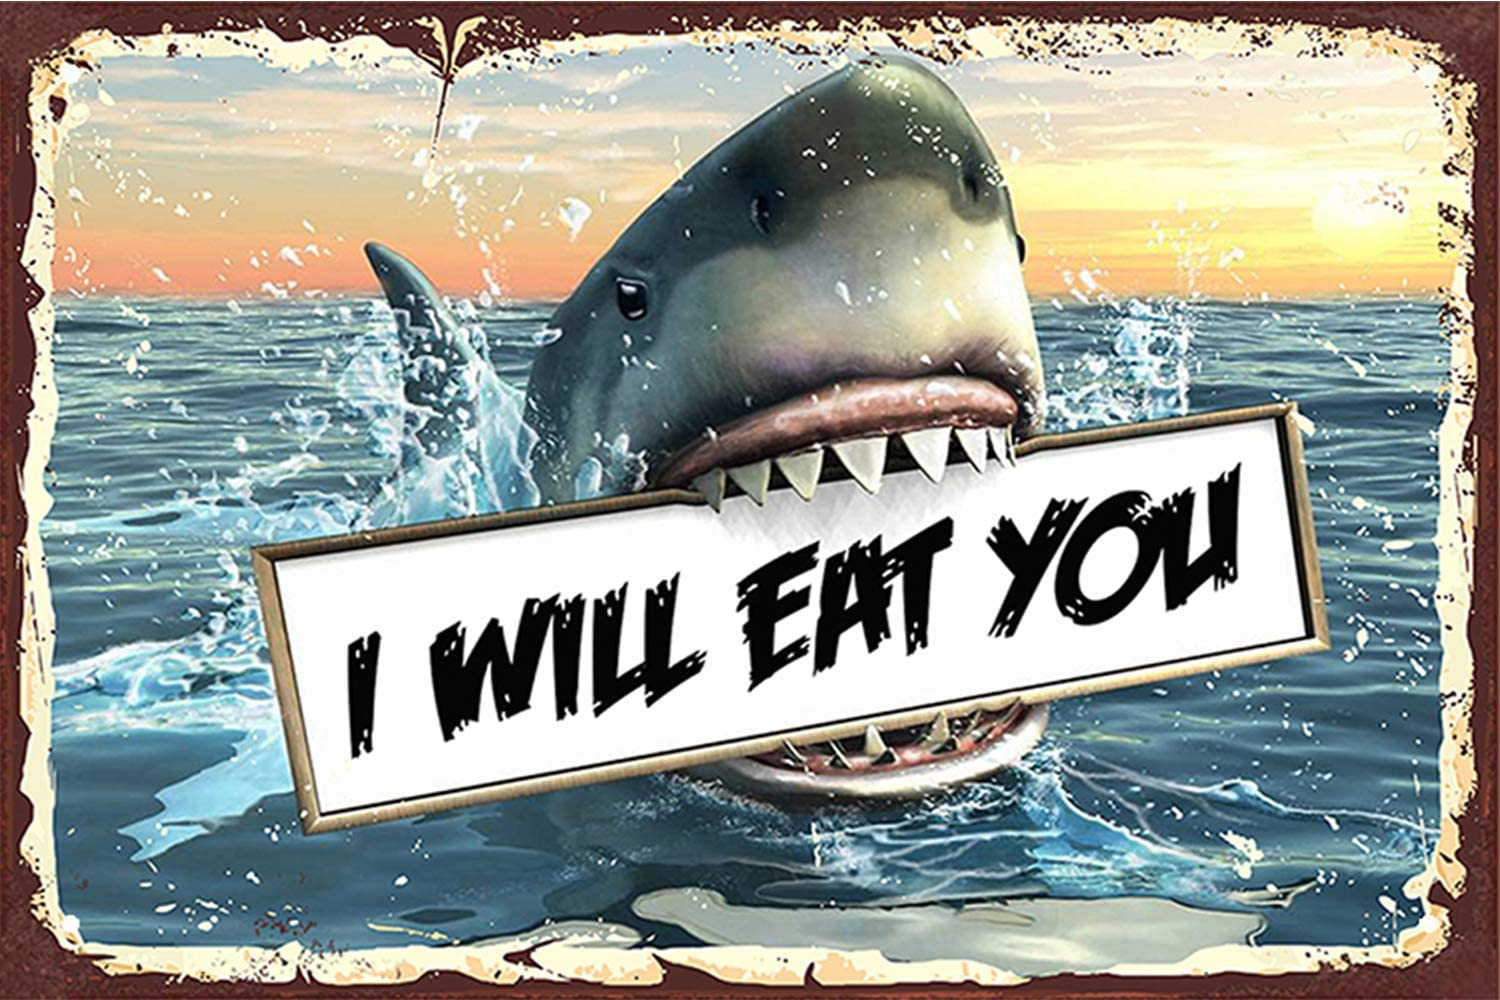 Tin Signs 8x12 inches, Funny Shark Warning I Will Eat You, Danger Shark Zone Danger Metal Sign Home Pub Wall Decor